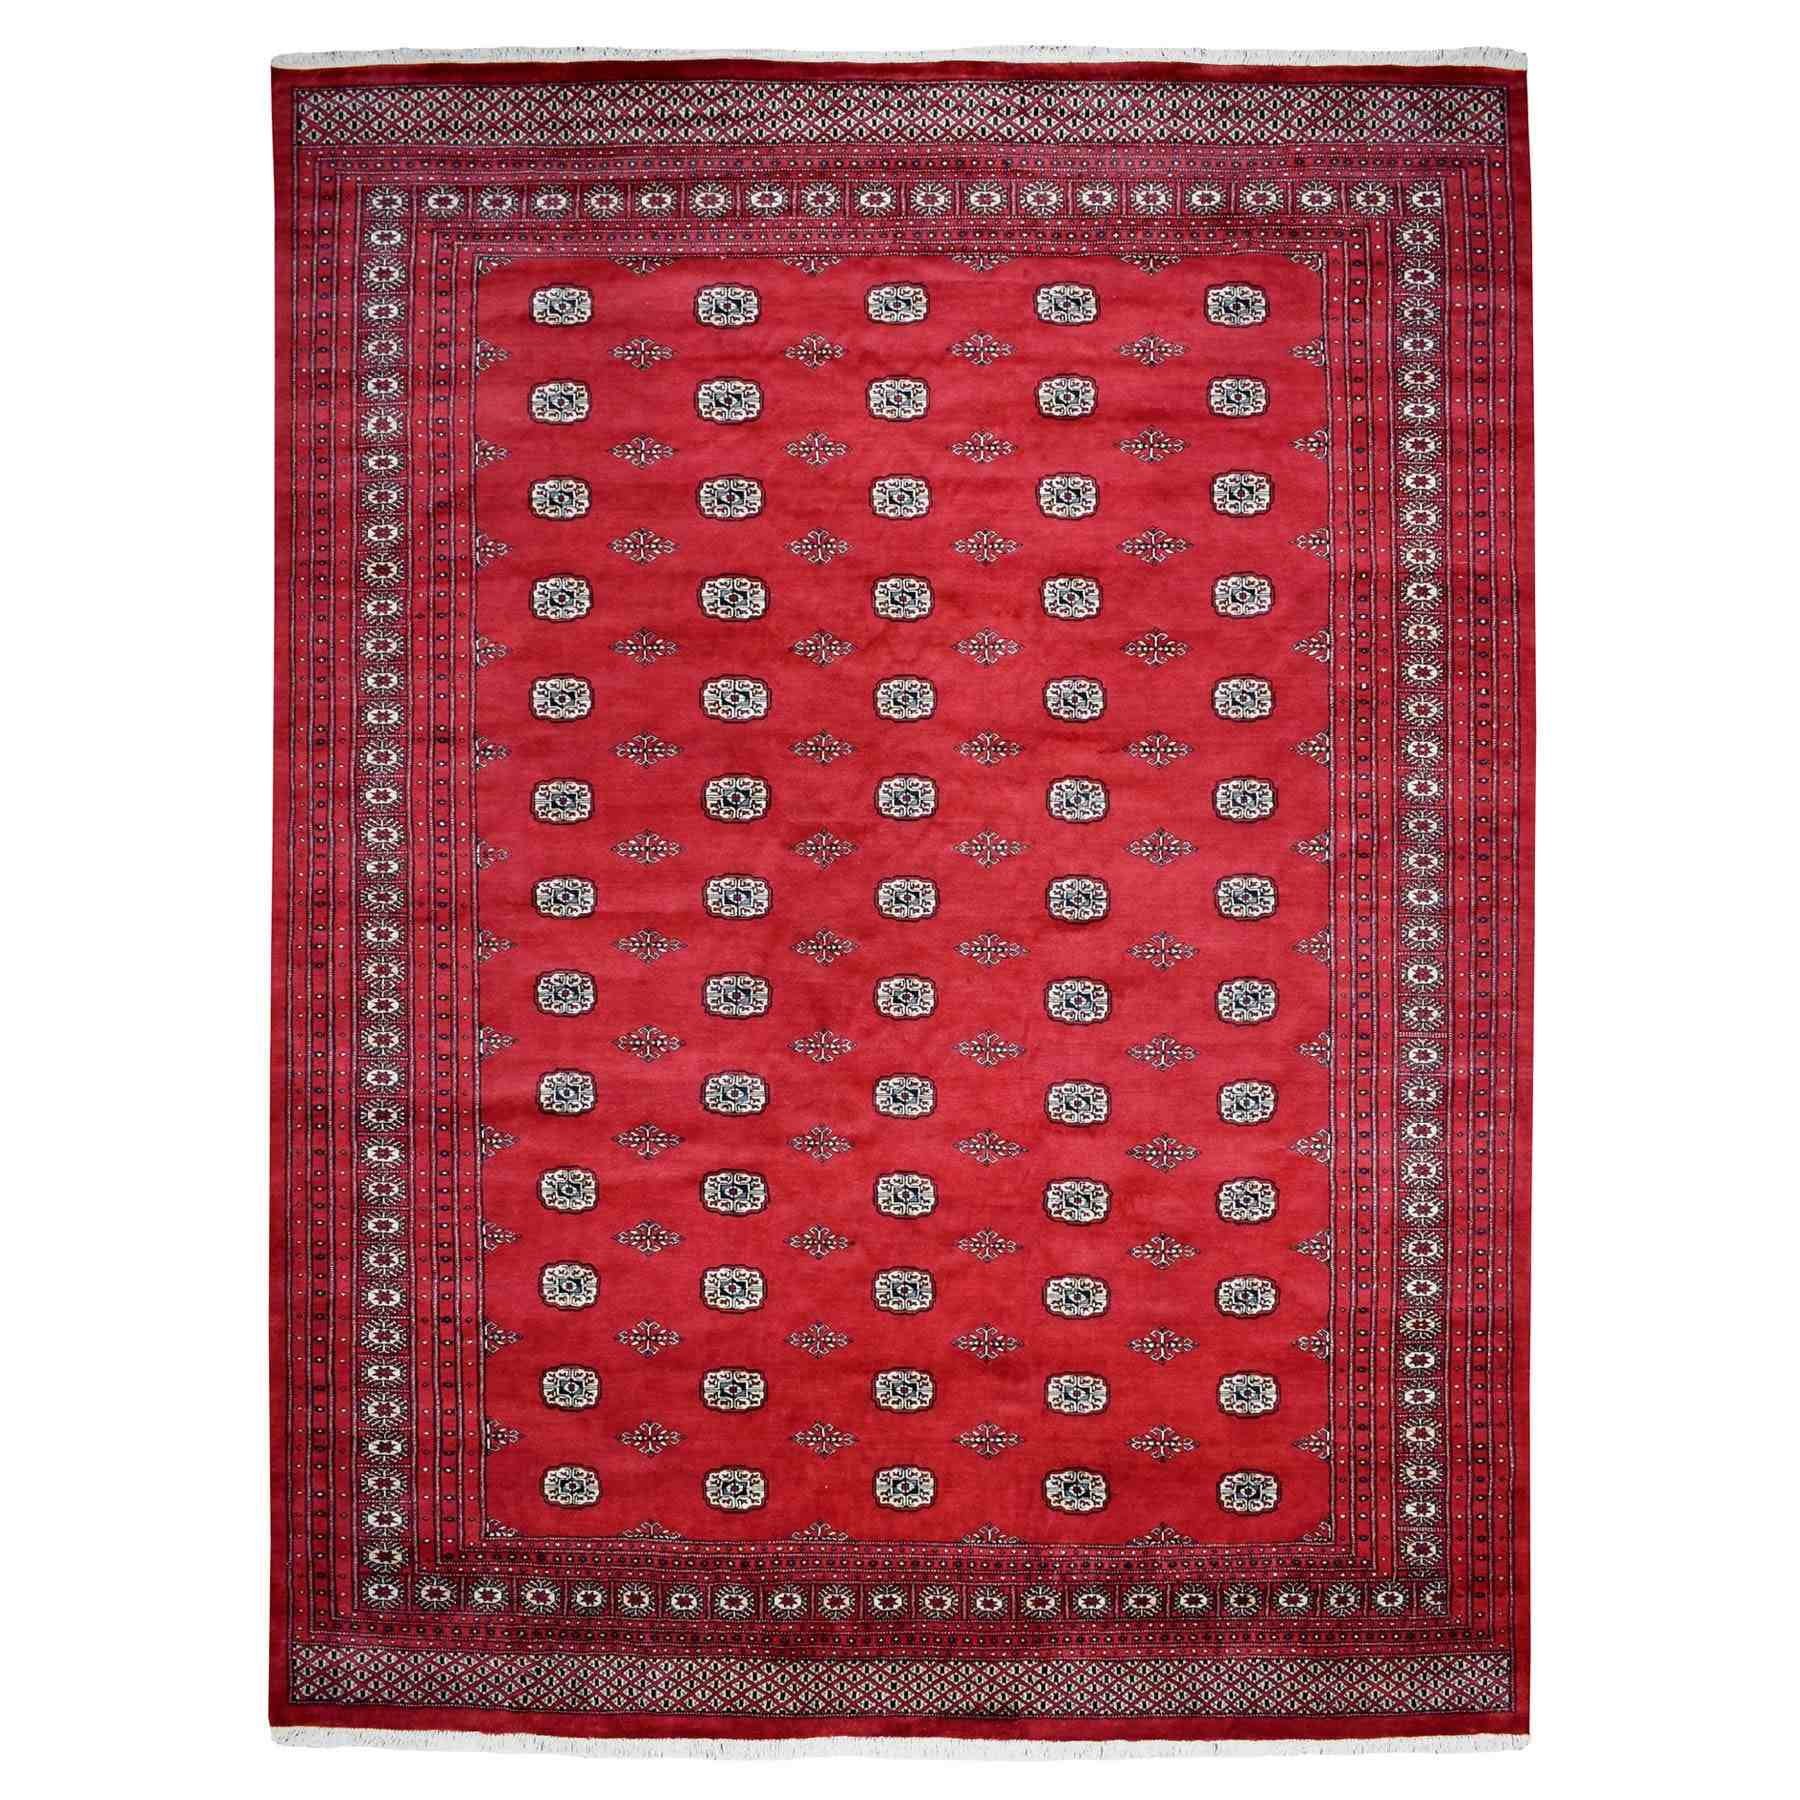 "10'3""x13'4"" Red Elephant Feet Design Mori Bokara Pure Wool Hand Woven Oriental Rug"